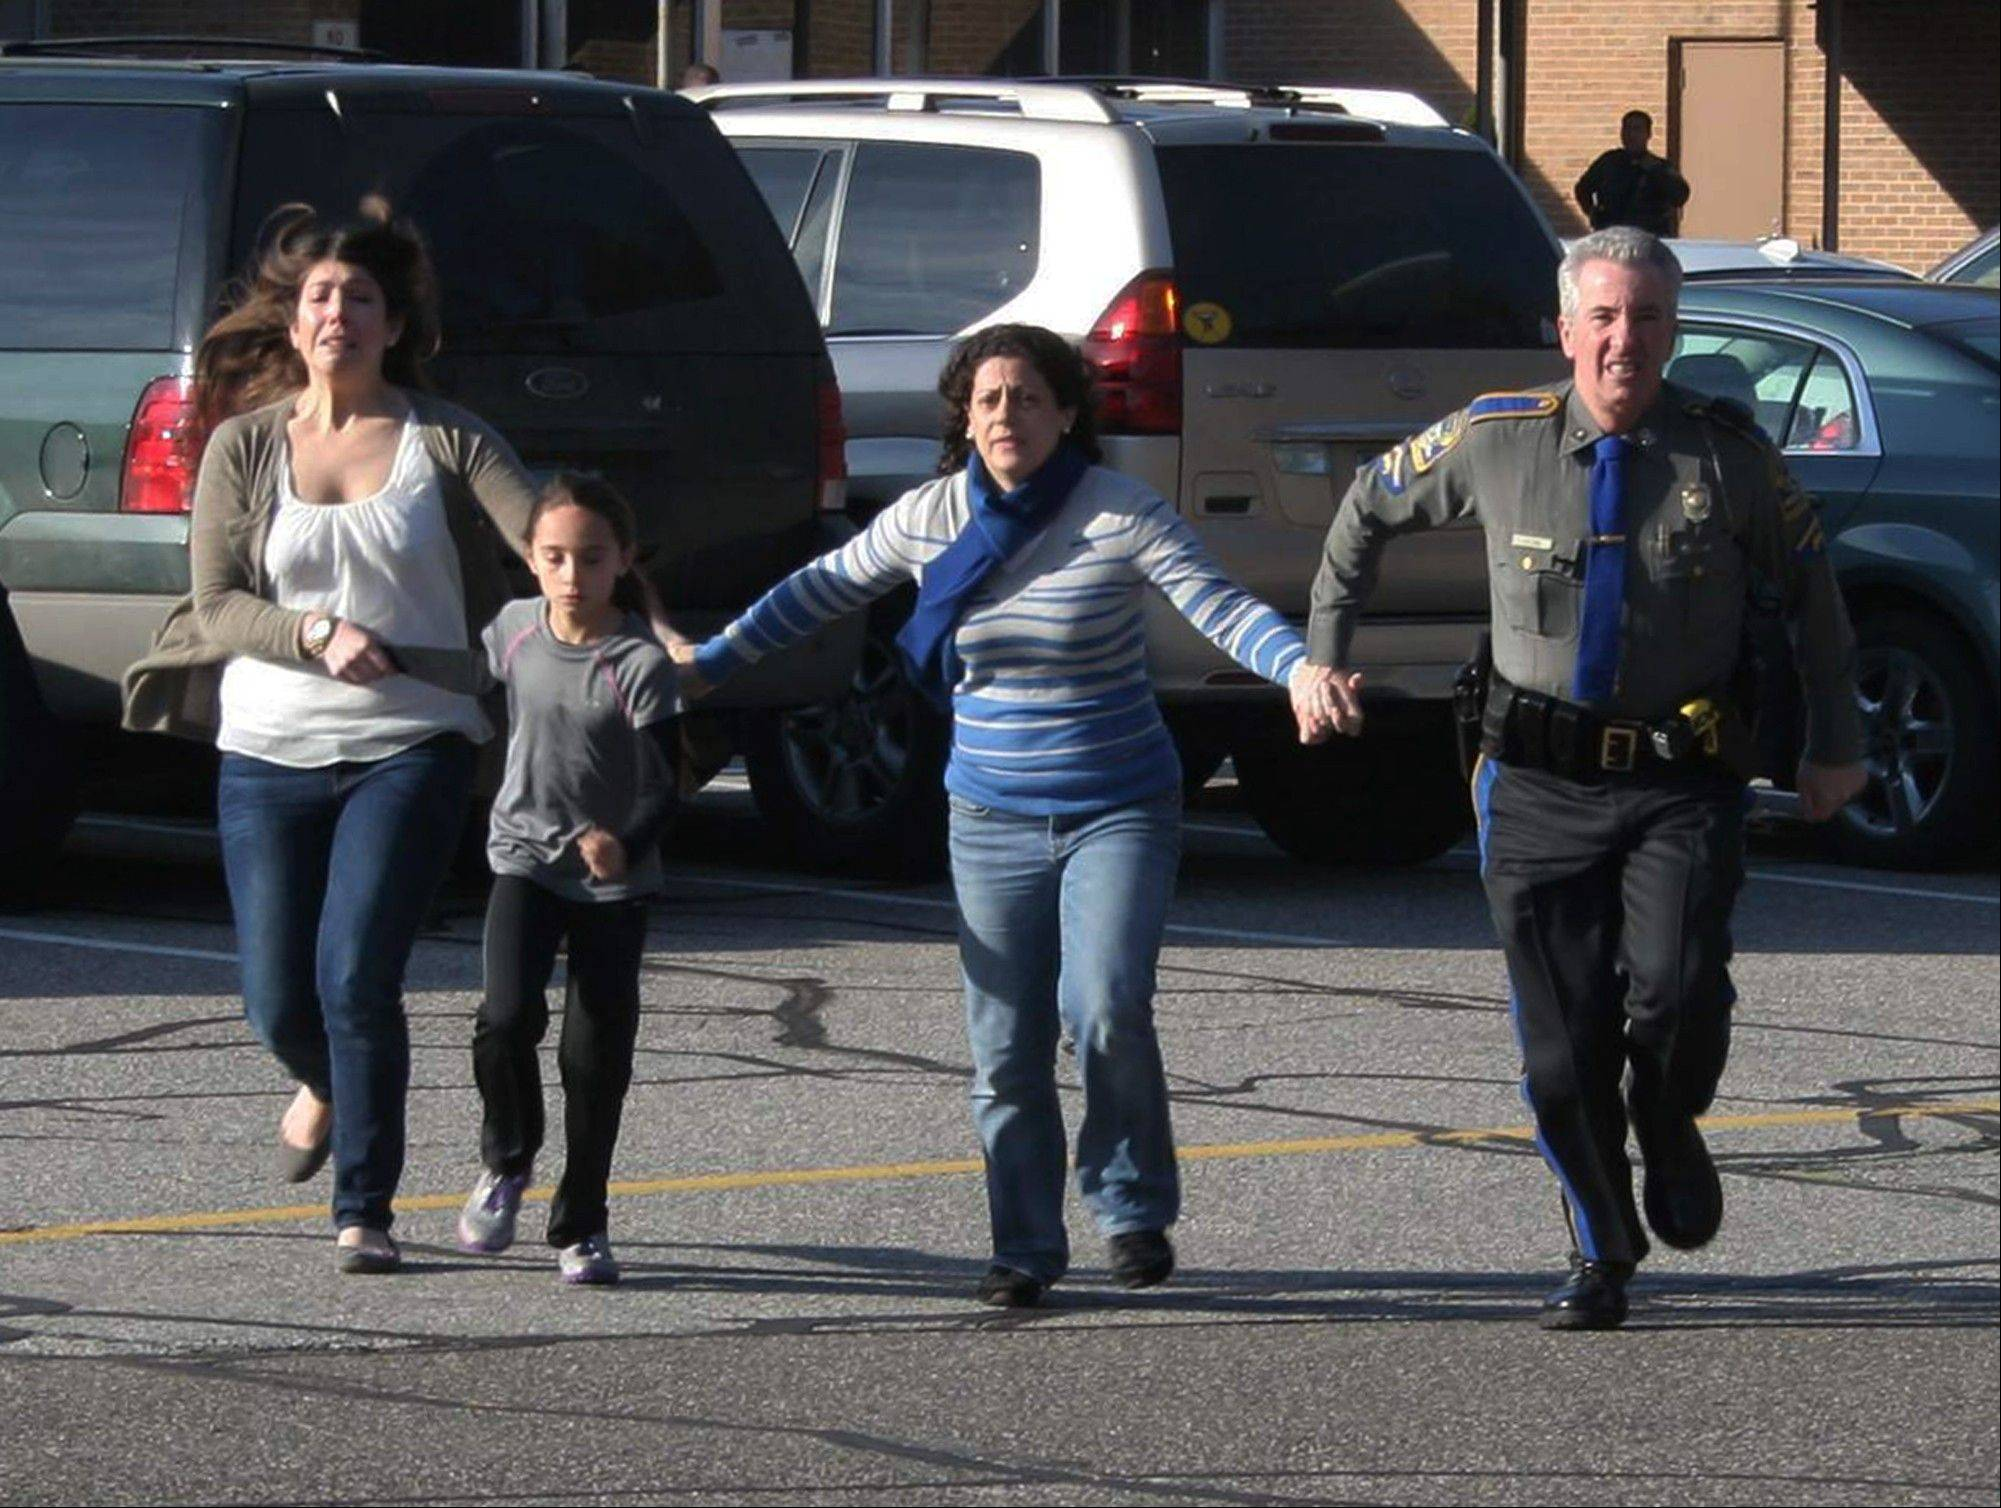 In this Dec. 14, 2012 e photo, a police officer leads two women and a child from Sandy Hook Elementary School in Newtown, Conn., shortly after Adam Lanza opened fire, killing 26 people, including 20 children.